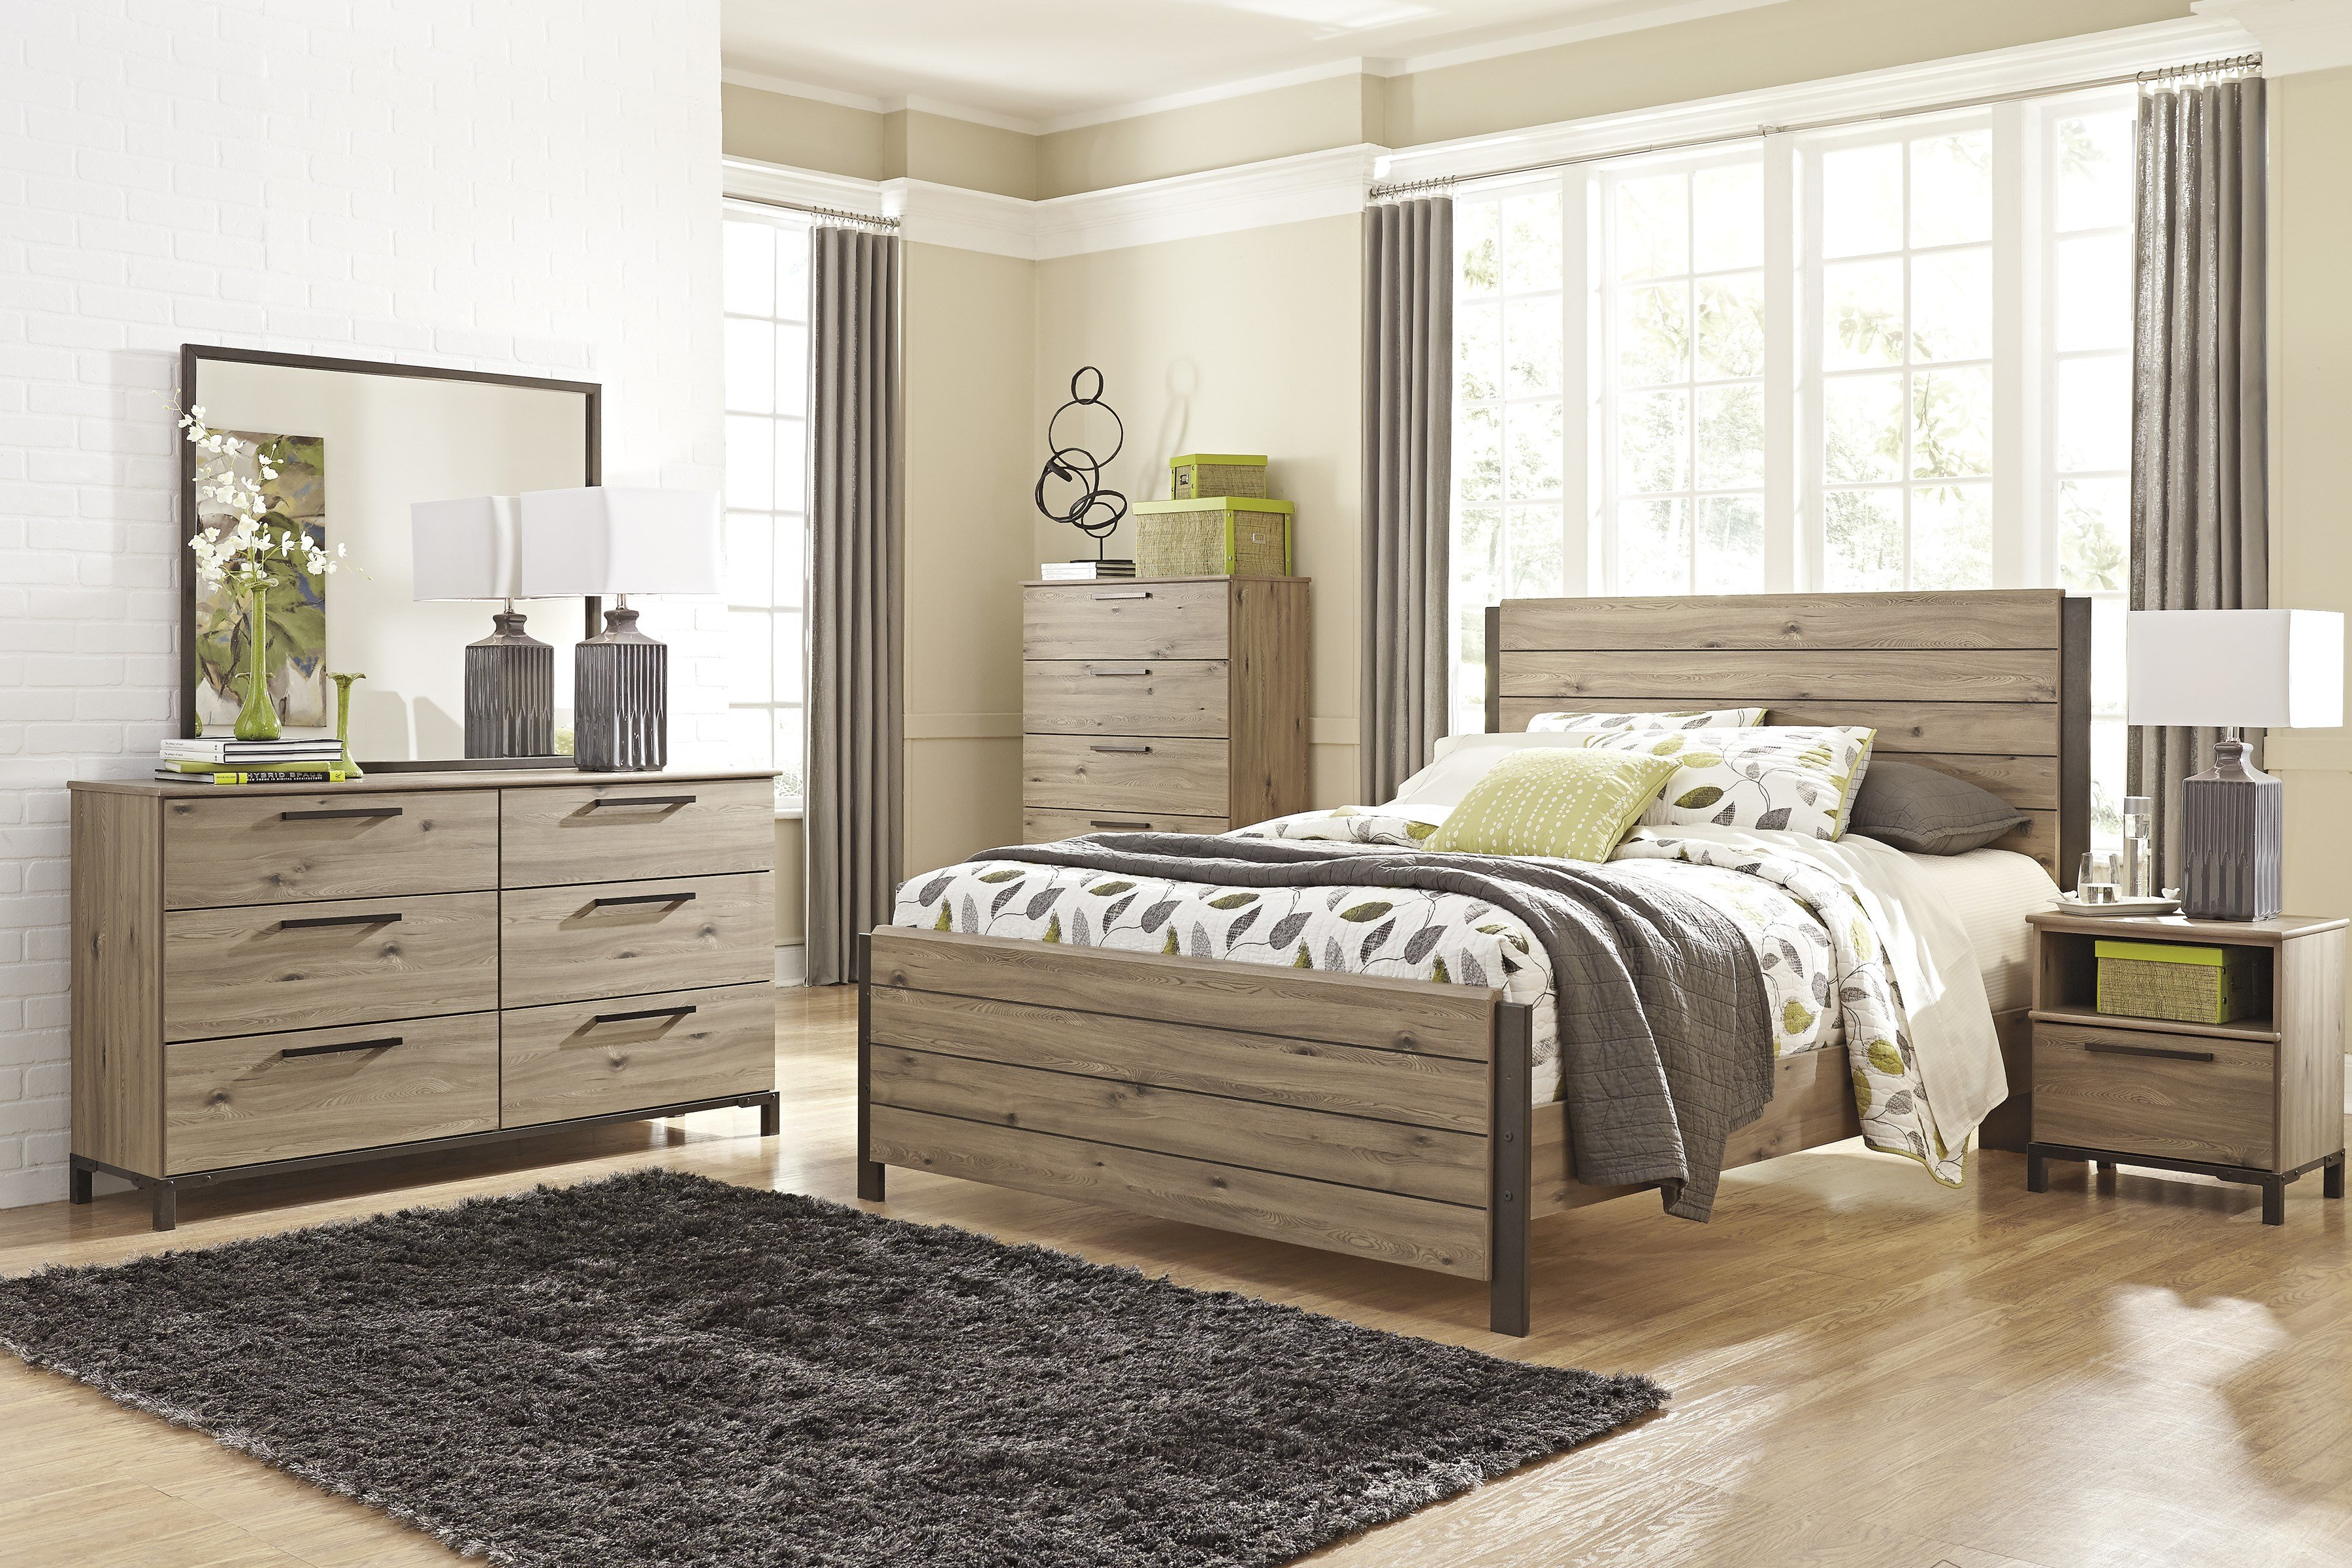 Best Bedroom Sets – All American Mattress Furniture With Pictures